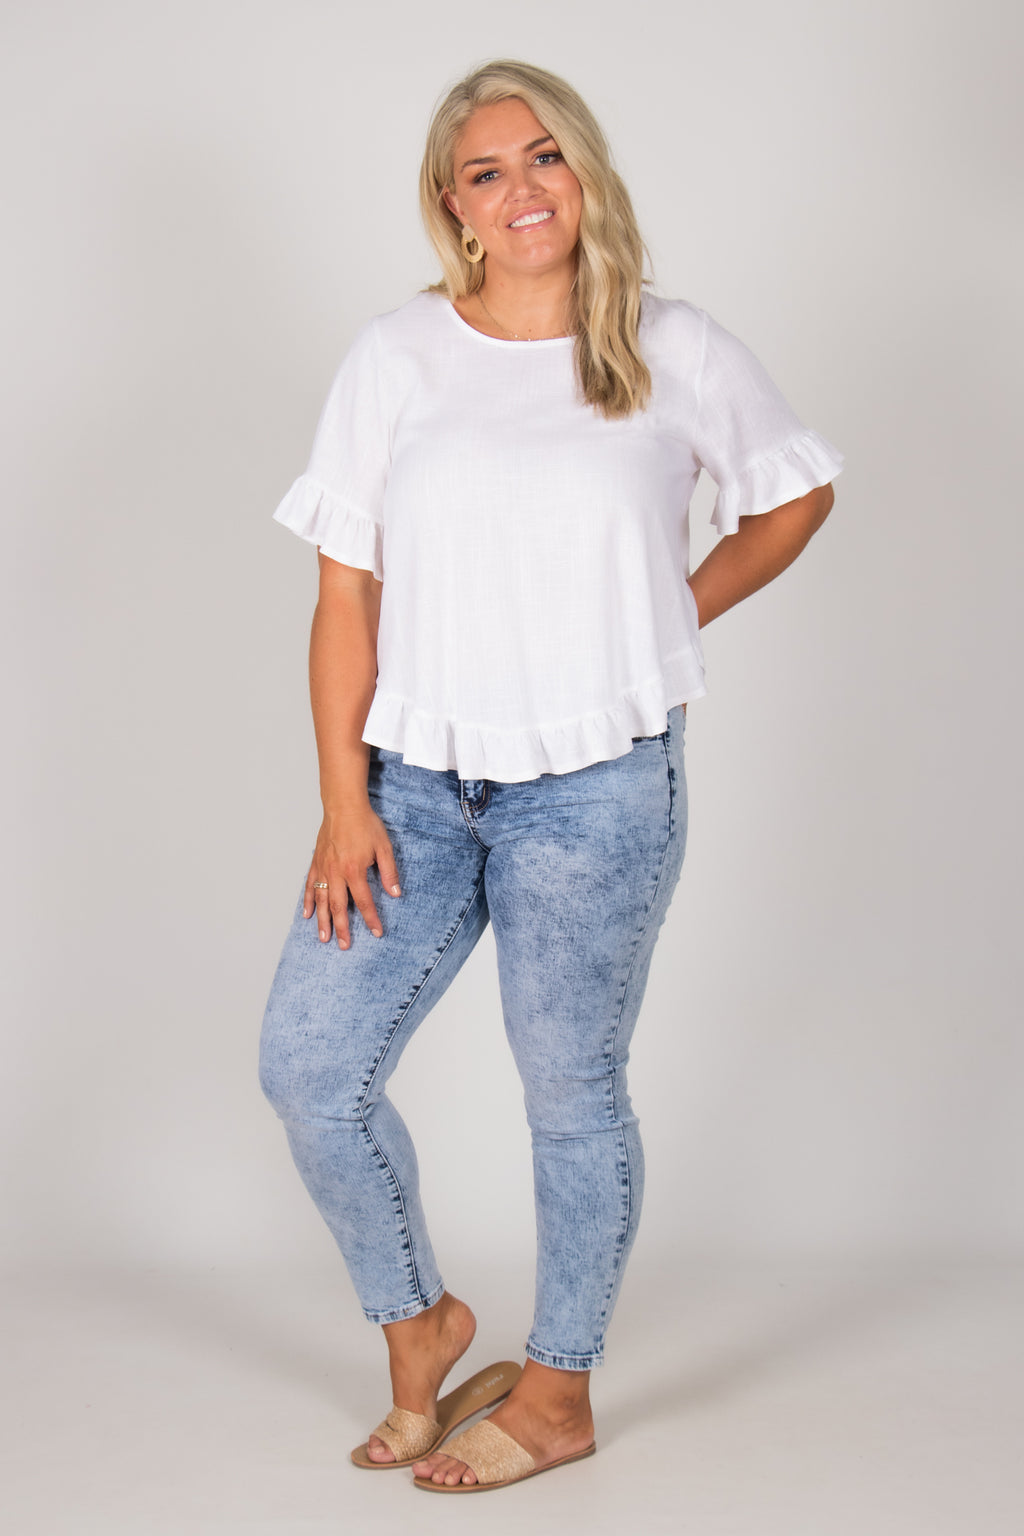 Ainslie Top in White